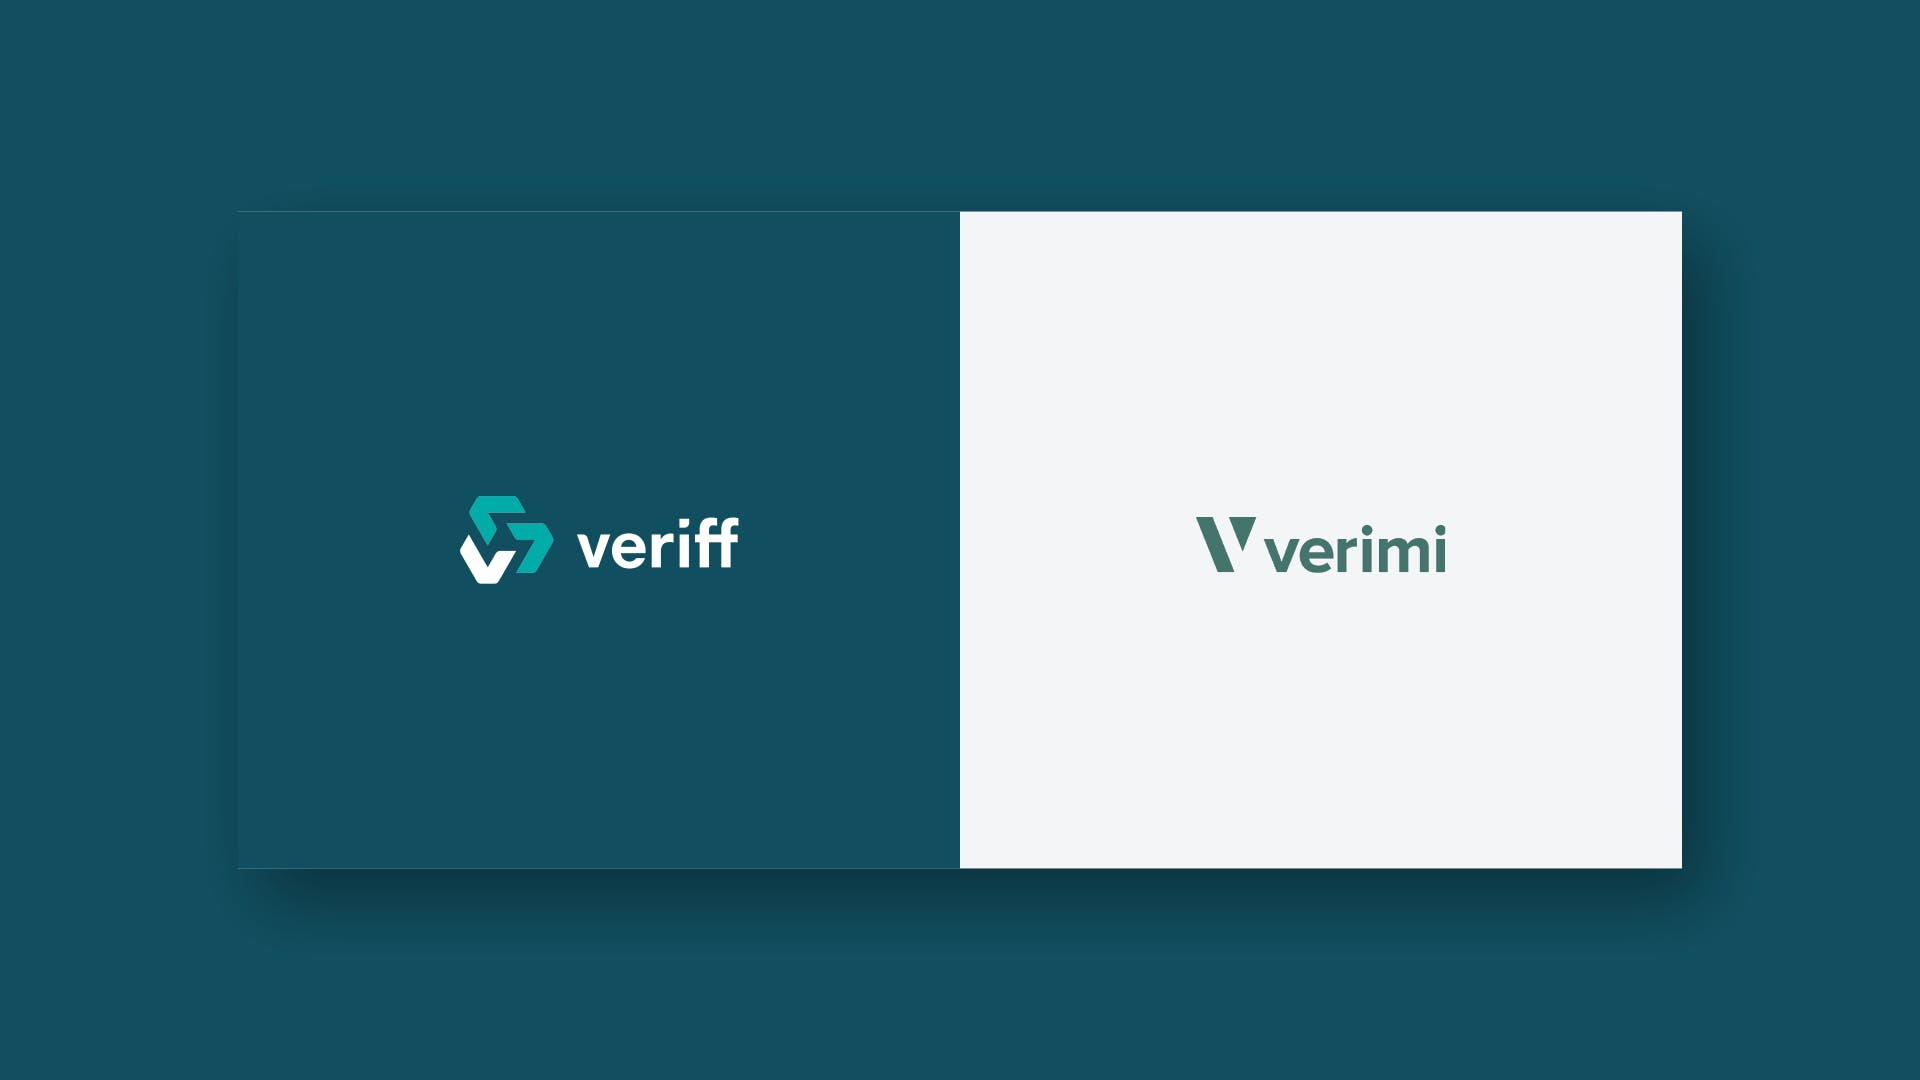 Veriff partners with the German digital identity management company Verimi